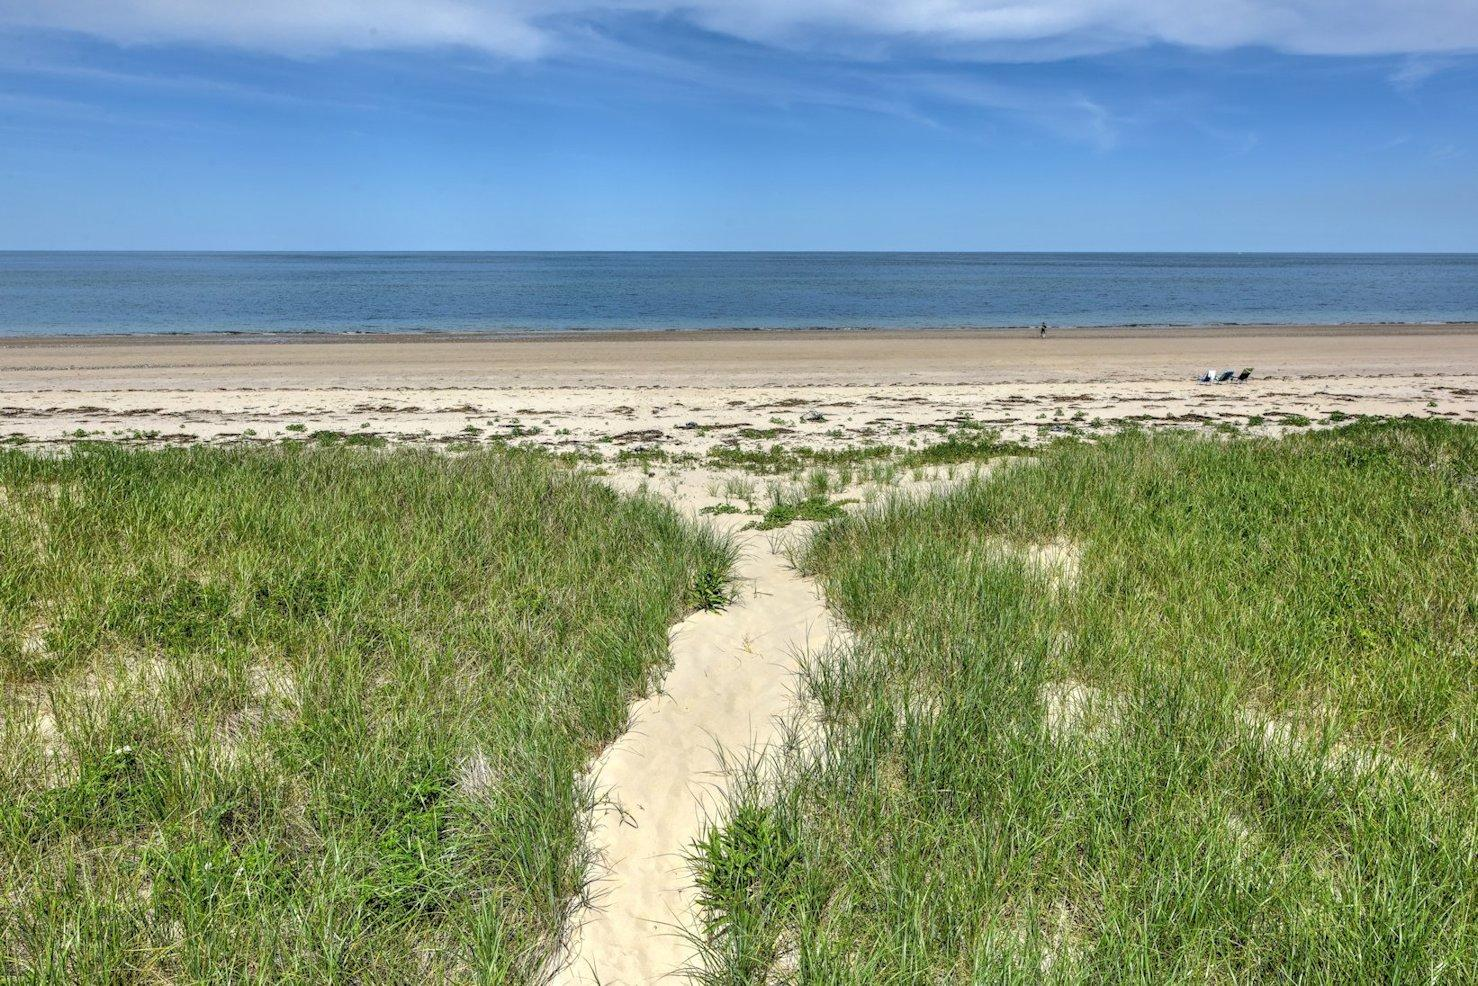 Pathway to the beach.